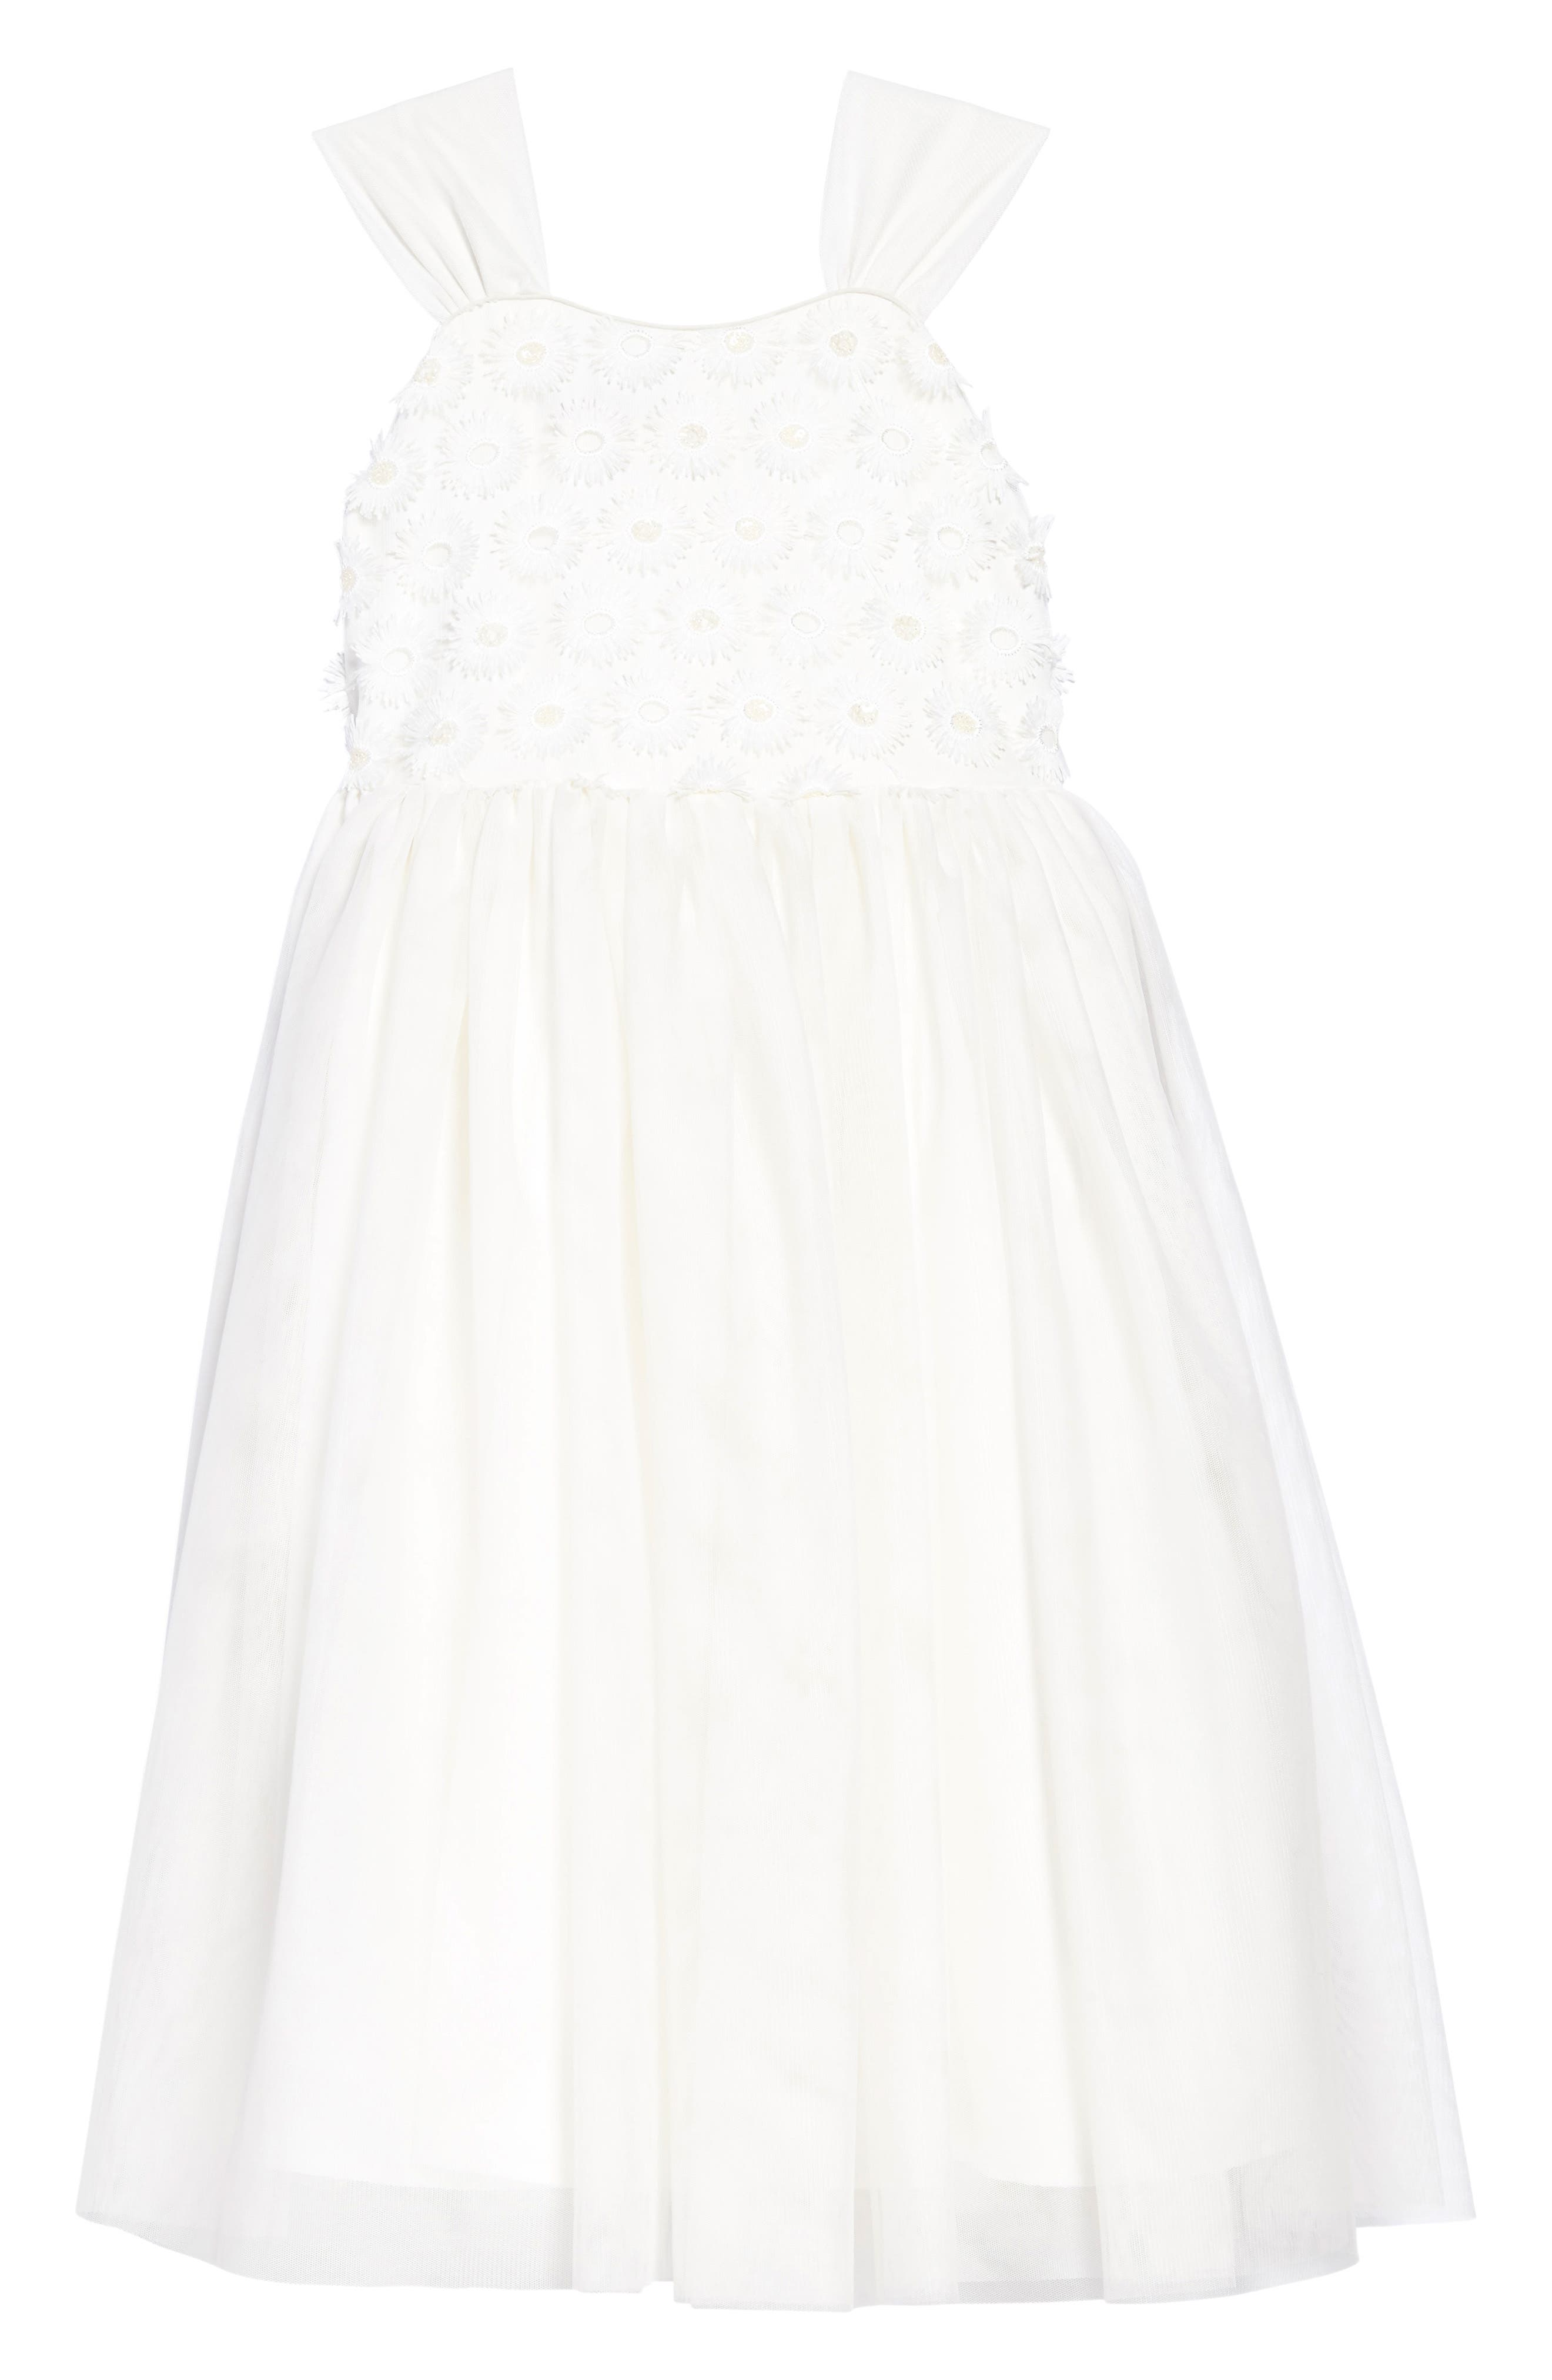 Pastourelle by Pippa & Julie Embroidered Daisy Tulle Dress (Toddler Girls, Little Girls & Big Girls)